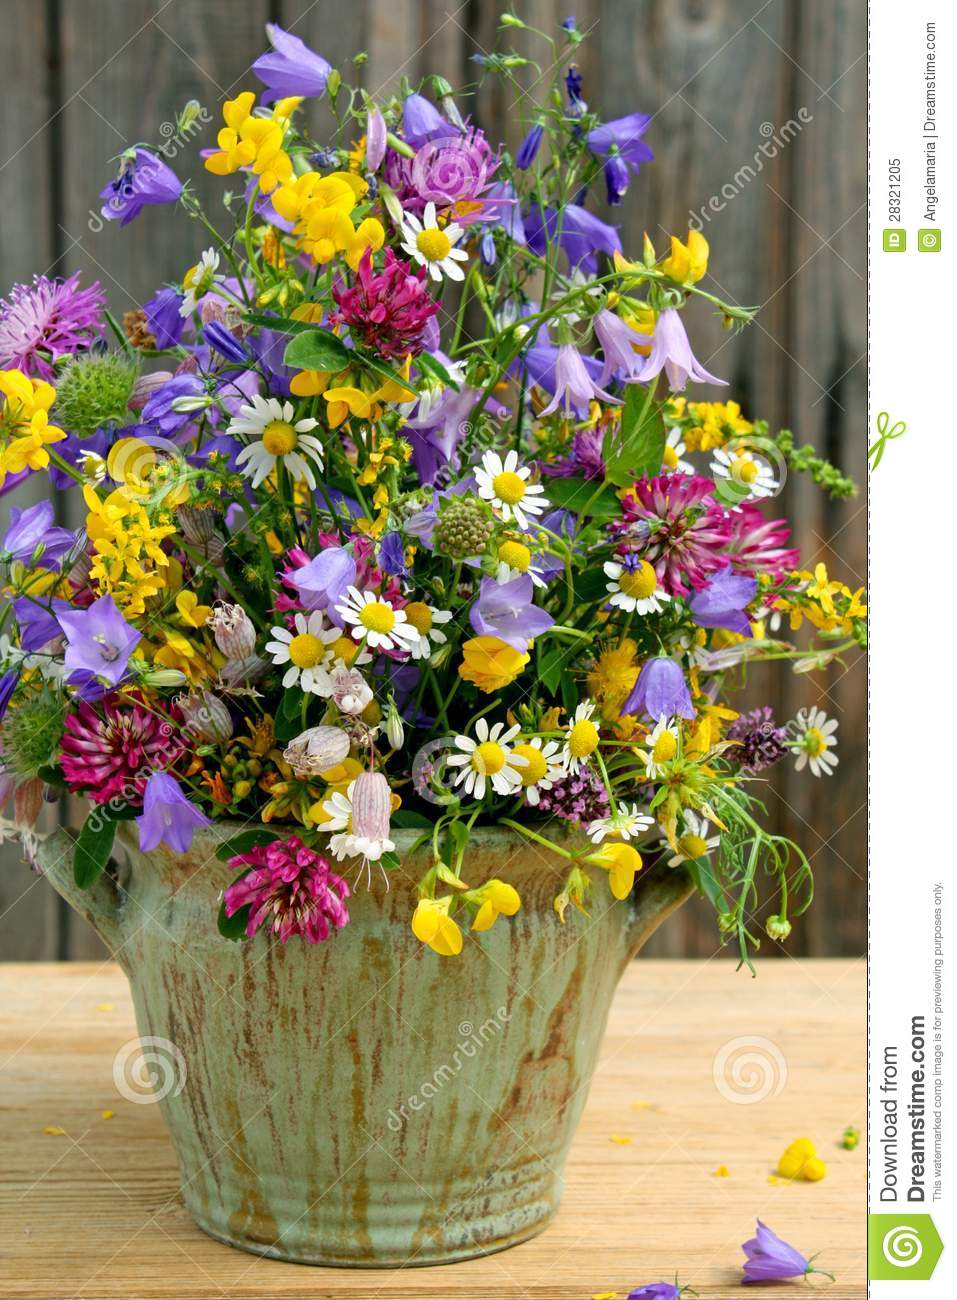 Wildflower Arrangement Stock Image Image Of Wooden